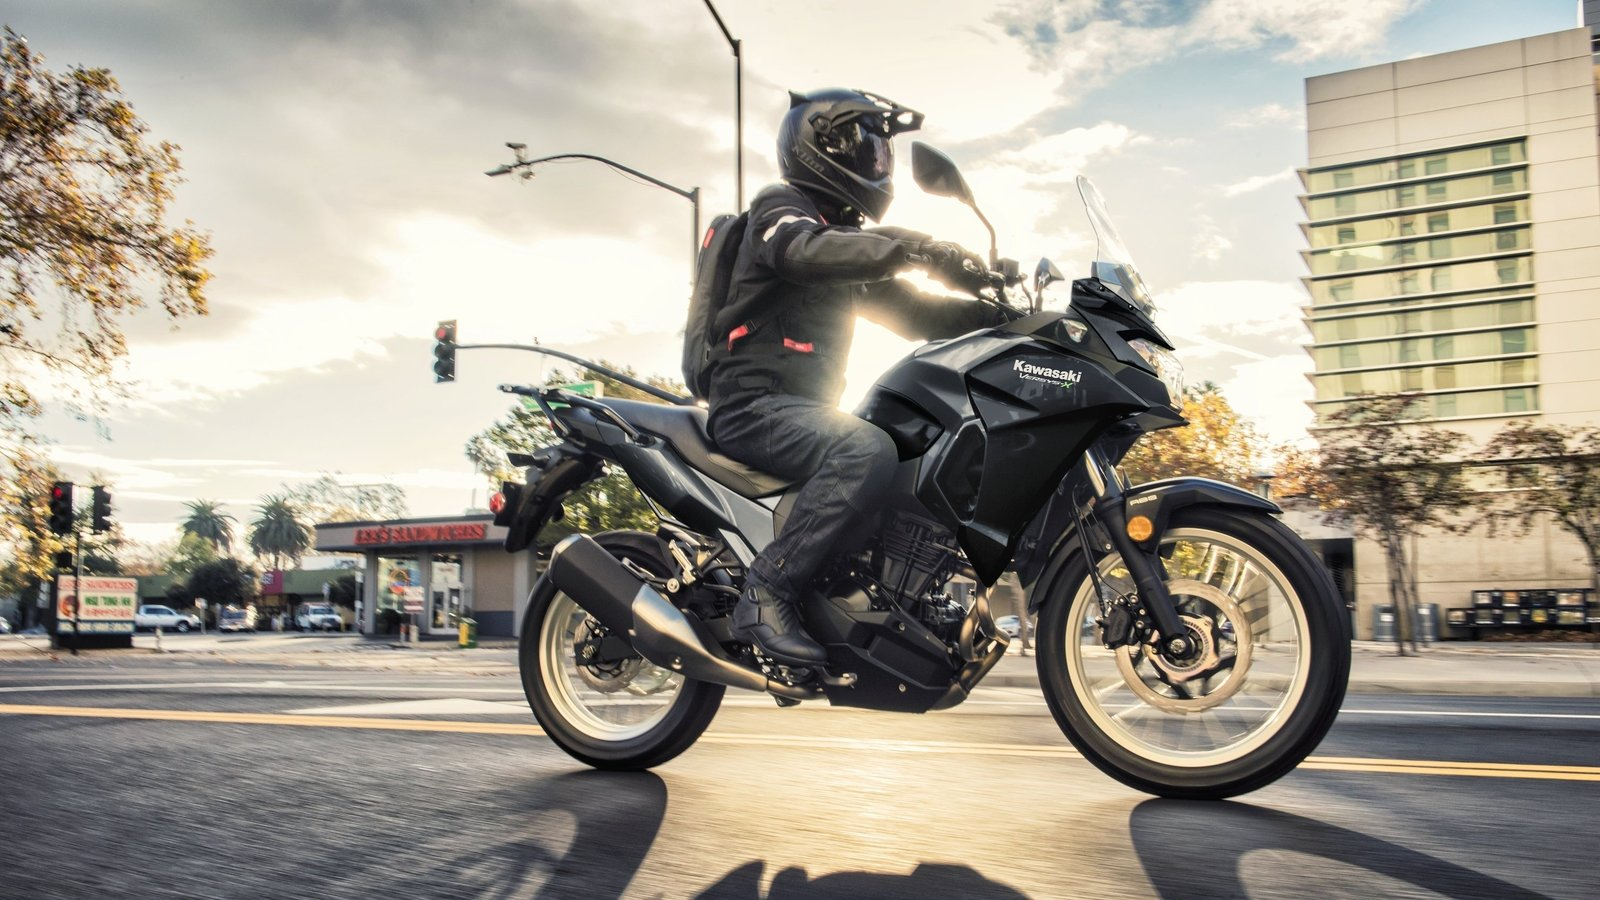 kawasaki versys reviews specs prices photos and videos. Black Bedroom Furniture Sets. Home Design Ideas